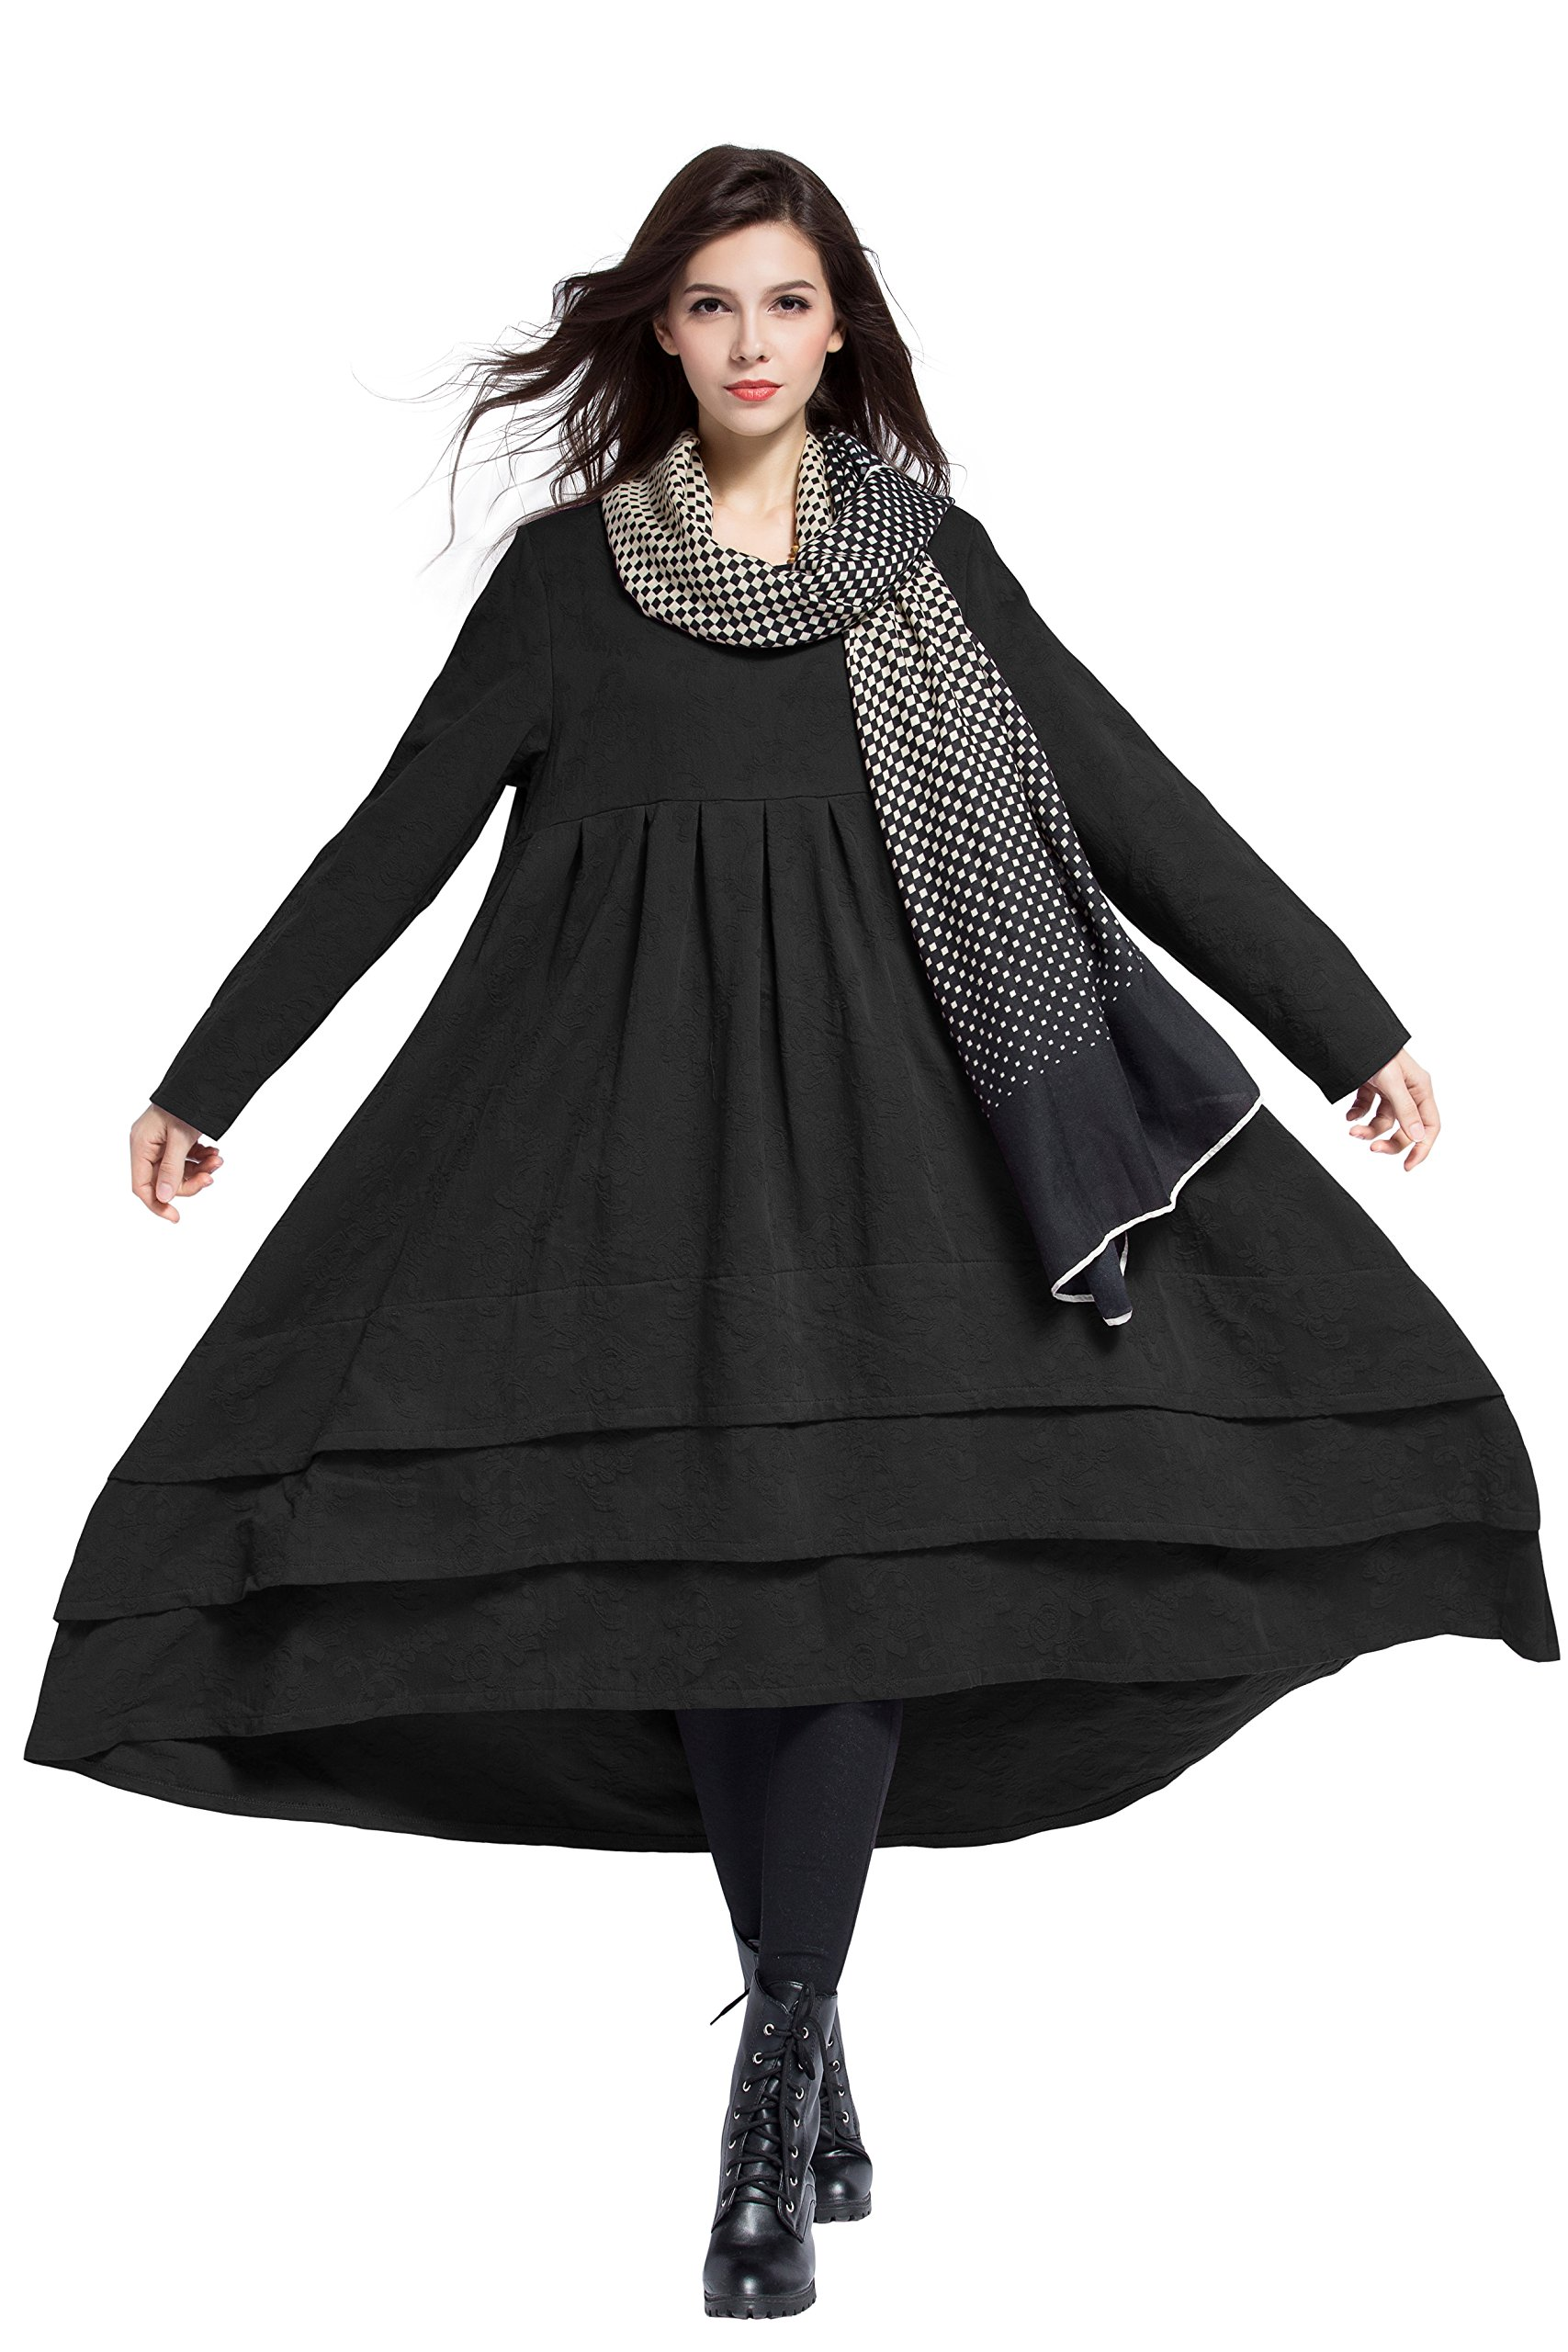 Anysize Jacquard Soft Linen&Cotton Dress Spring Winter Plus Size Dress Y312 by Anysize